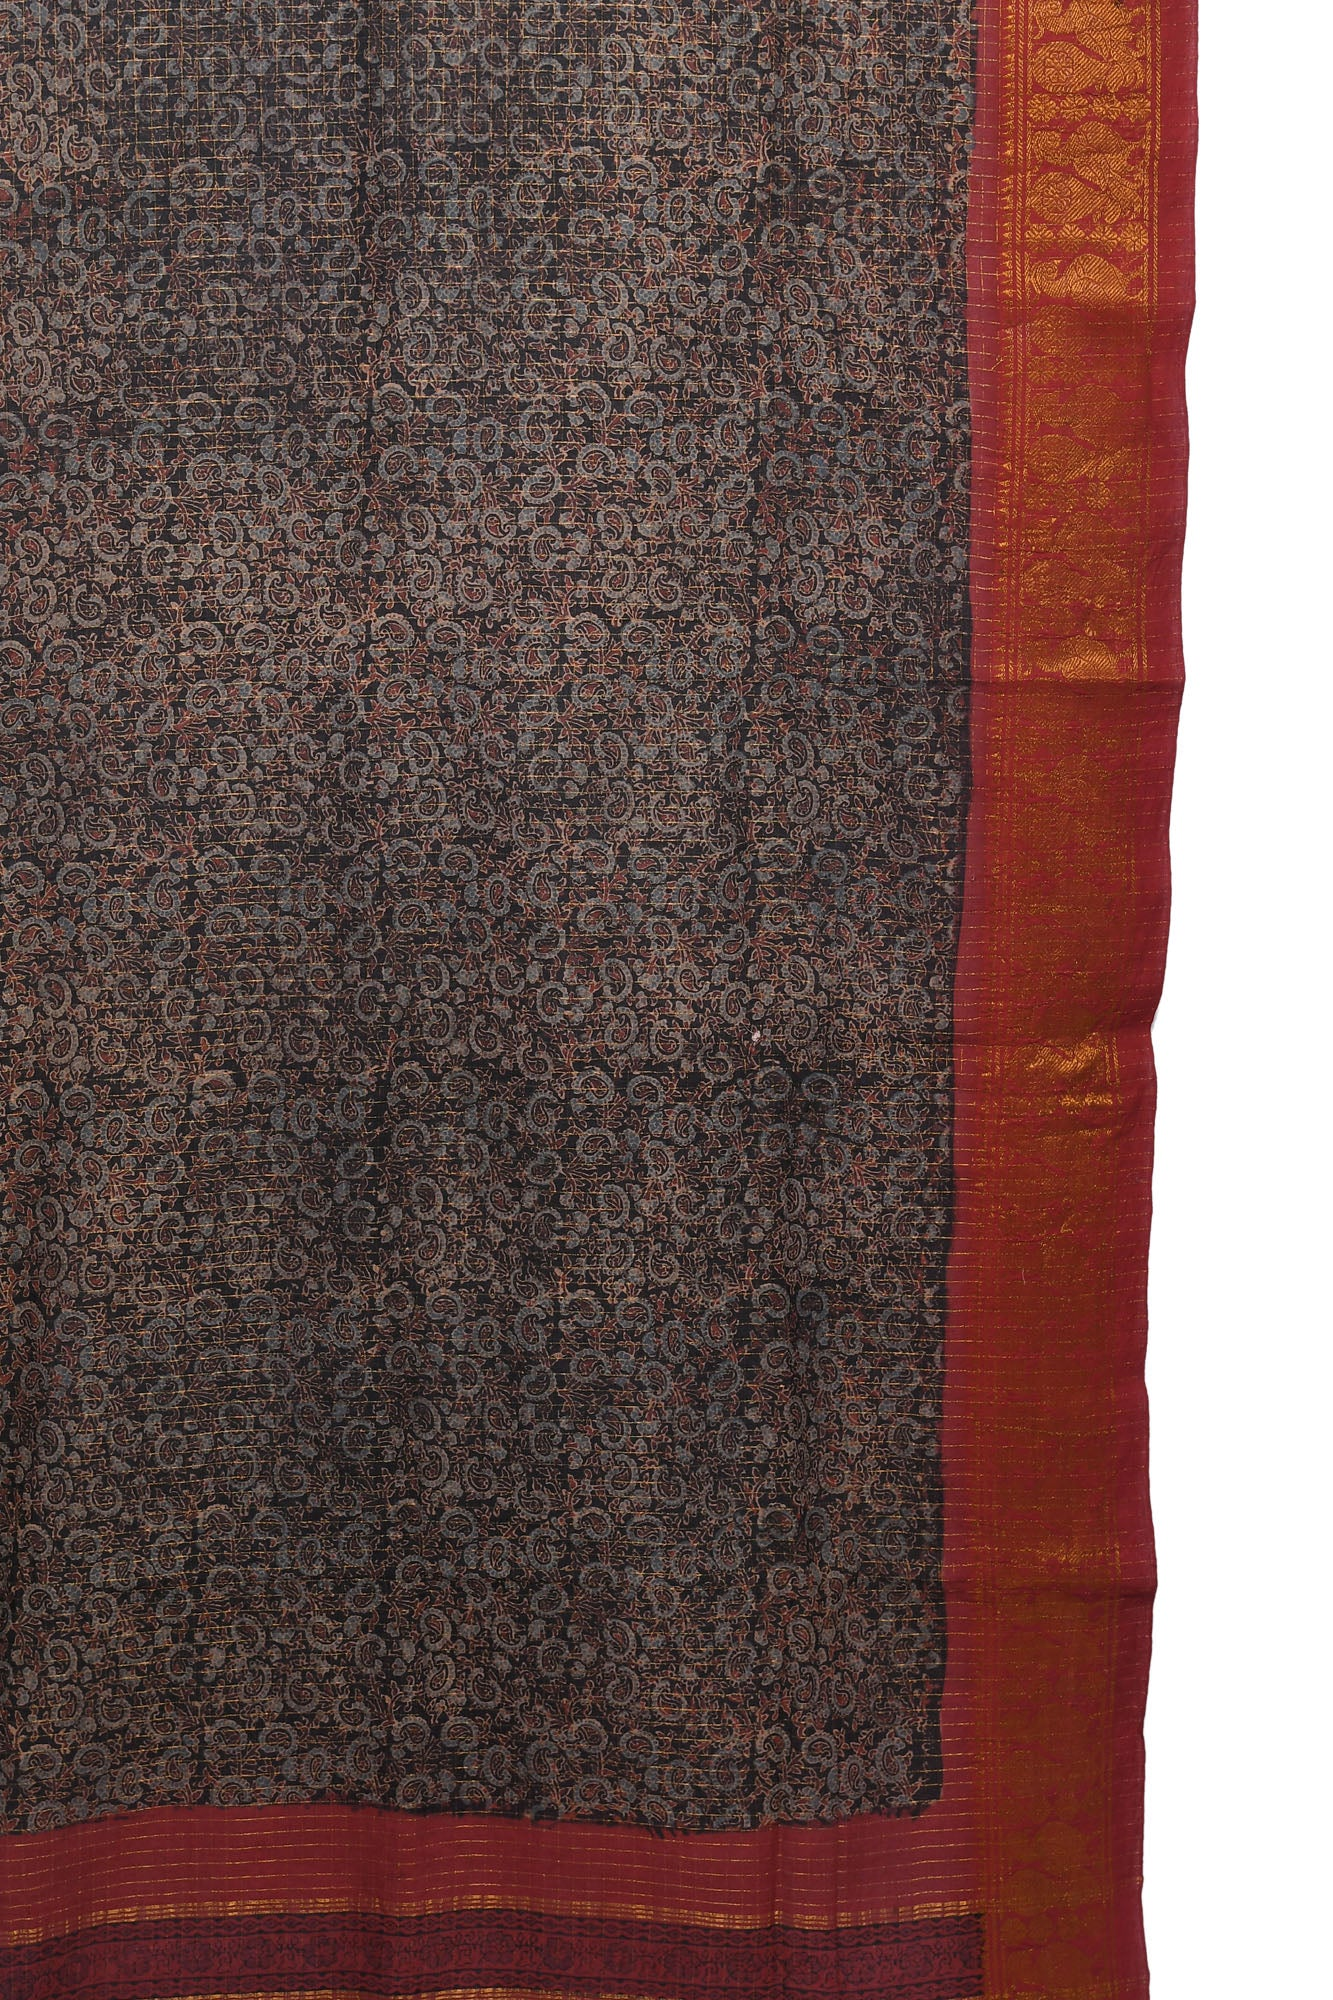 Black Ajrakh printed cotton saree with maroon border - EARTHICA